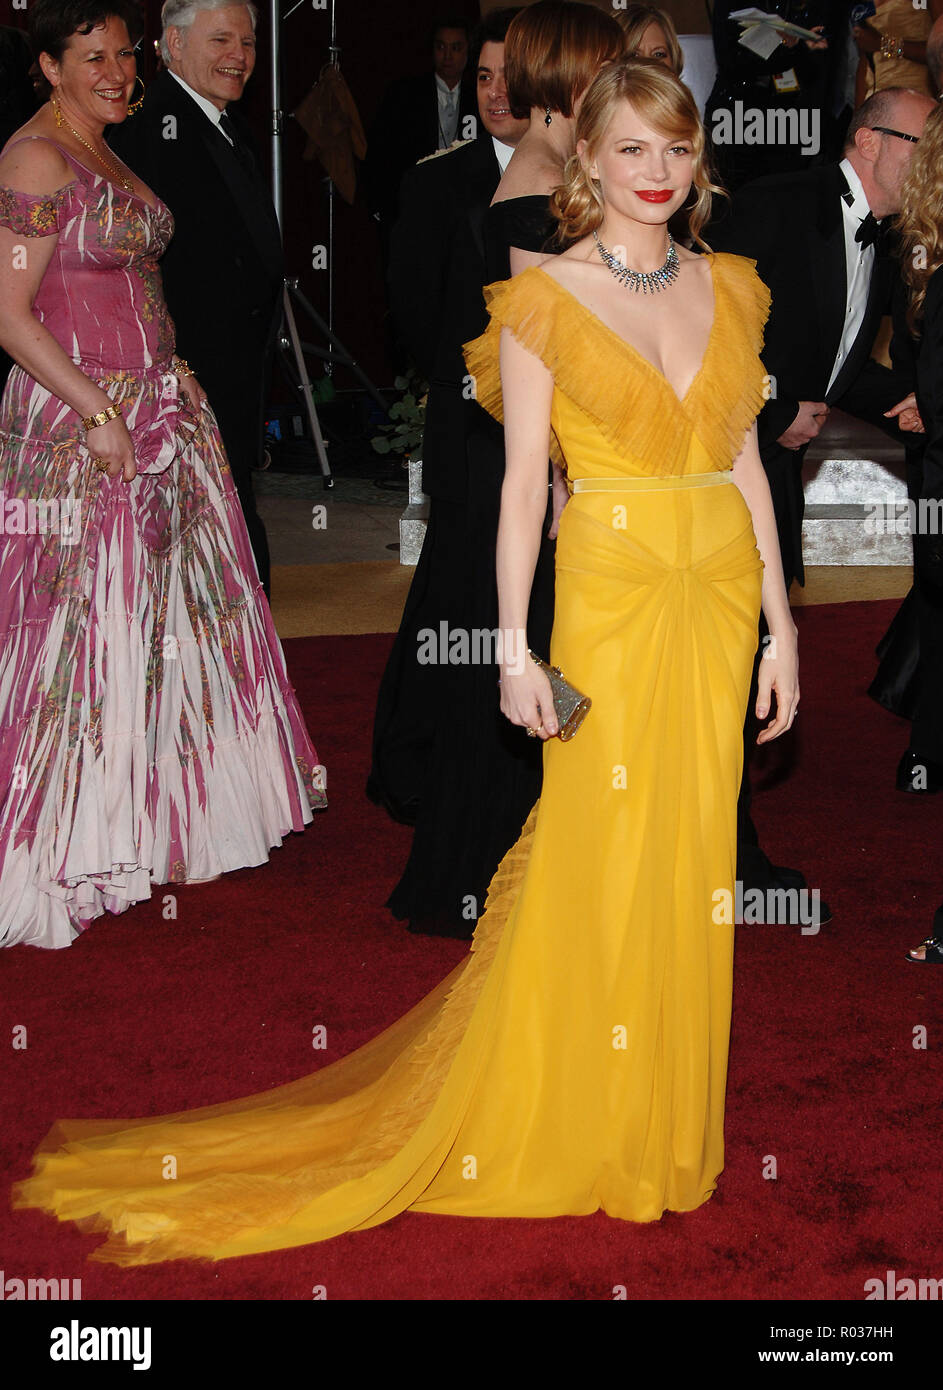 Michelle Williams arriving at the 78th Academy of Motion Pictures (Oscars)  at the Kodak Theatre in Los Angeles. March 5, 200612_WilliamsMichelle309 Red Carpet Event, Vertical, USA, Film Industry, Celebrities,  Photography, Bestof, Arts Culture and Entertainment, Topix Celebrities fashion /  Vertical, Best of, Event in Hollywood Life - California,  Red Carpet and backstage, USA, Film Industry, Celebrities,  movie celebrities, TV celebrities, Music celebrities, Photography, Bestof, Arts Culture and Entertainment,  Topix, vertical, one person,, from the year , 2006, inquiry tsuni@Gamma-USA.com F - Stock Image